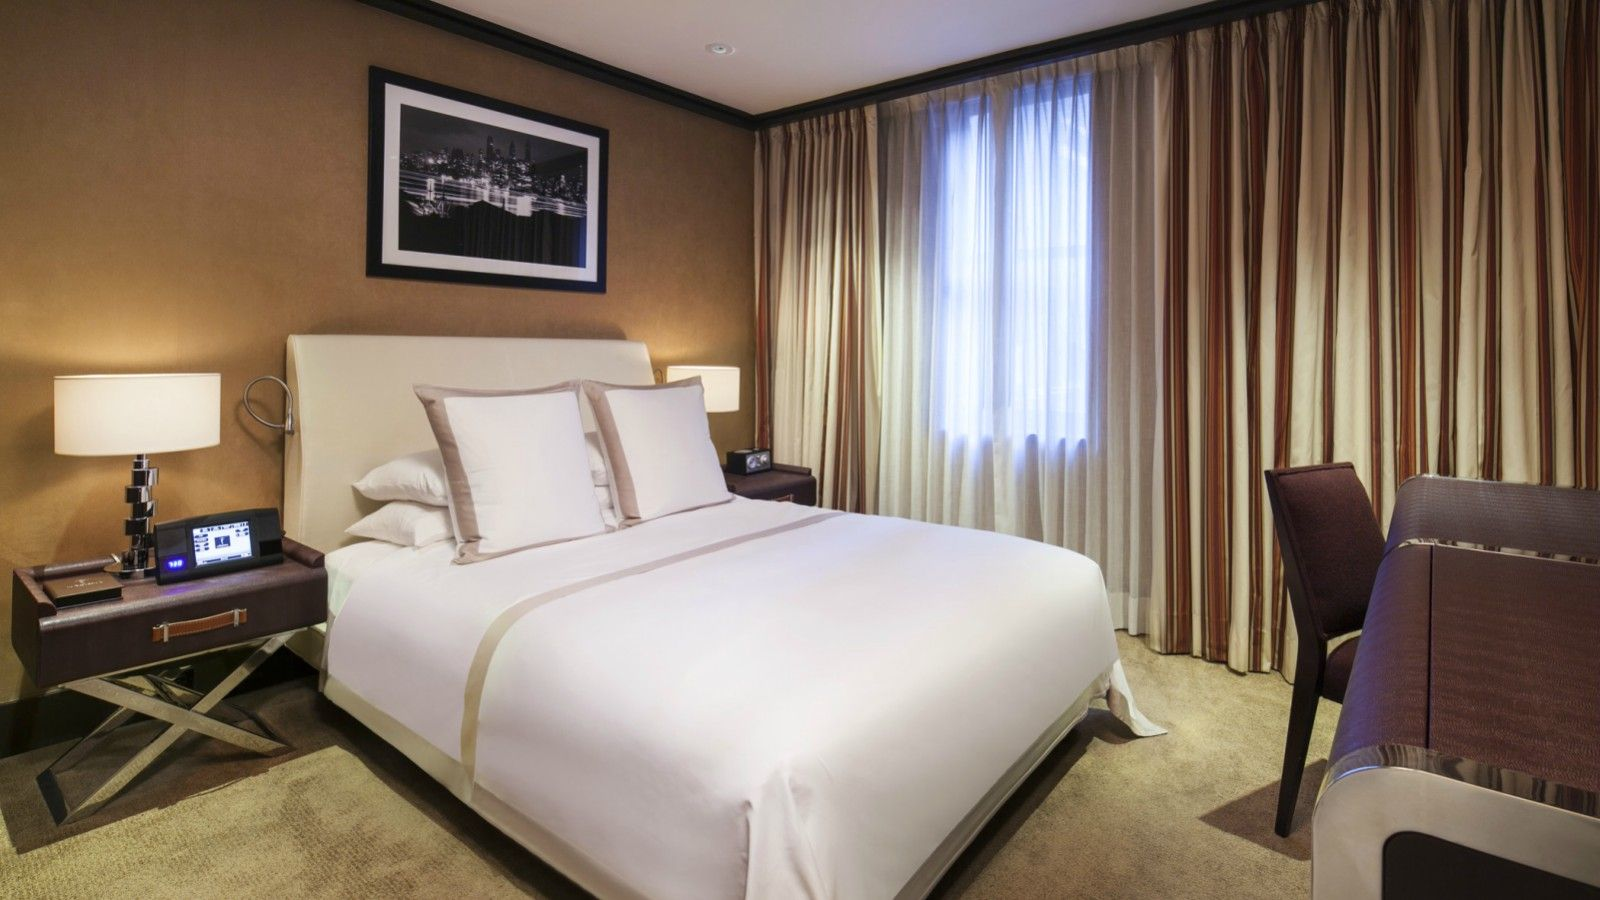 New York Hotels With 2 Bedroom Suites Luxury Hotel In New York The Chatwal New York City